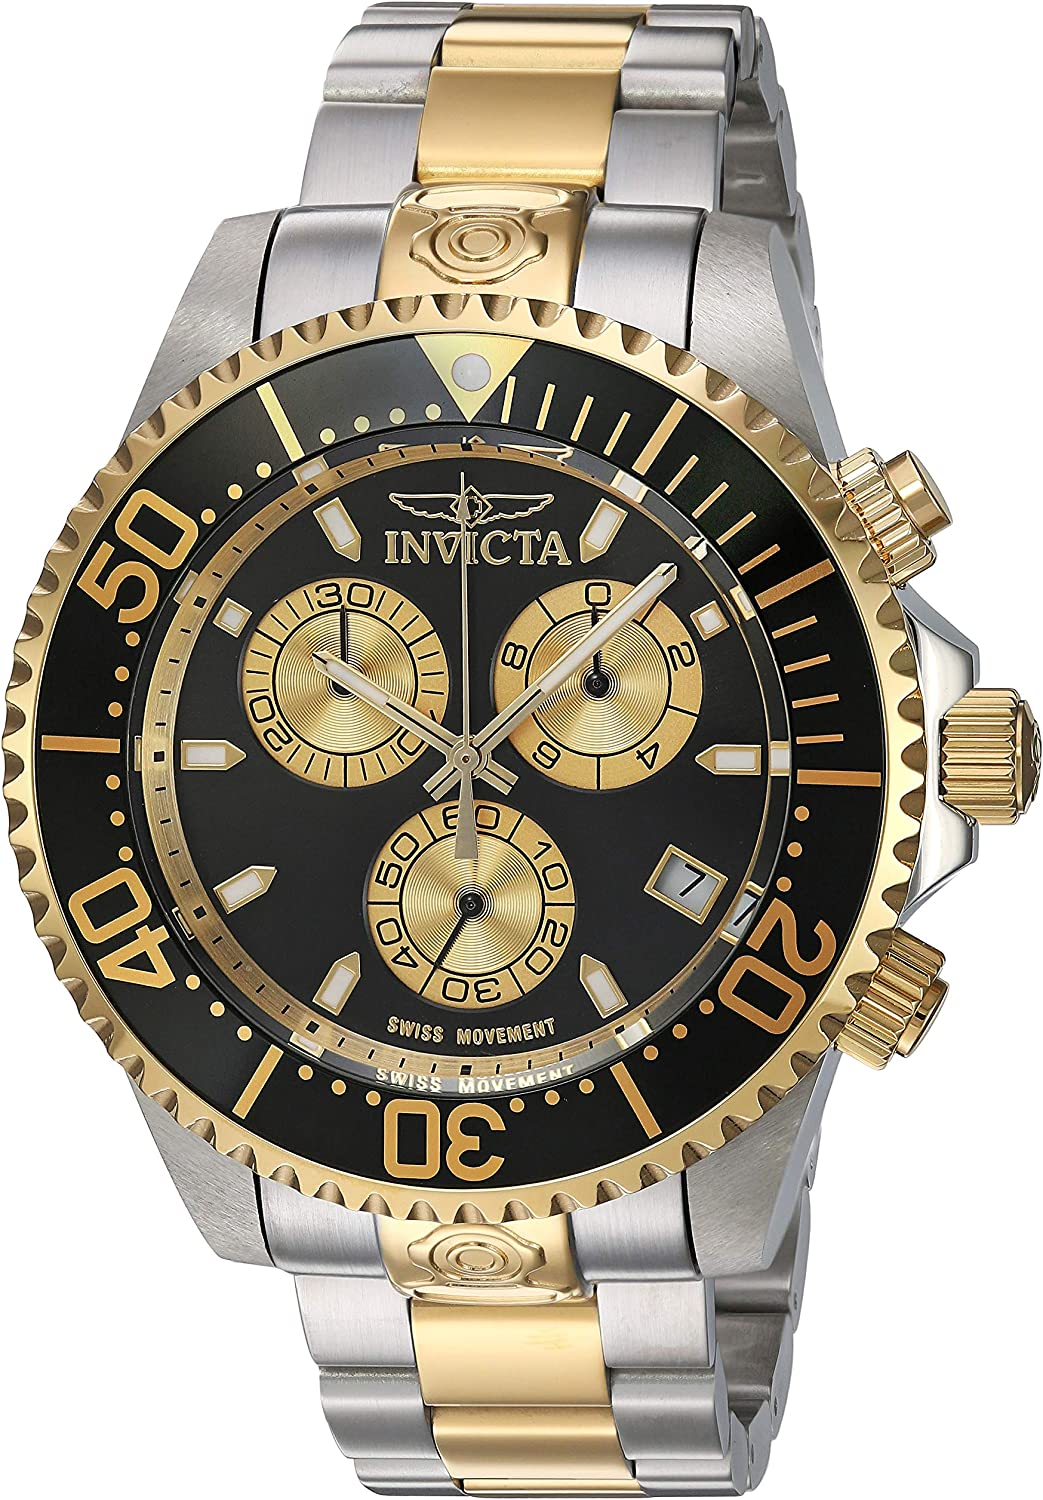 Invicta Men s Pro Diver Quartz Diving Watch with Stainless-Steel Strap, Two Tone, 21.5 Model 26850